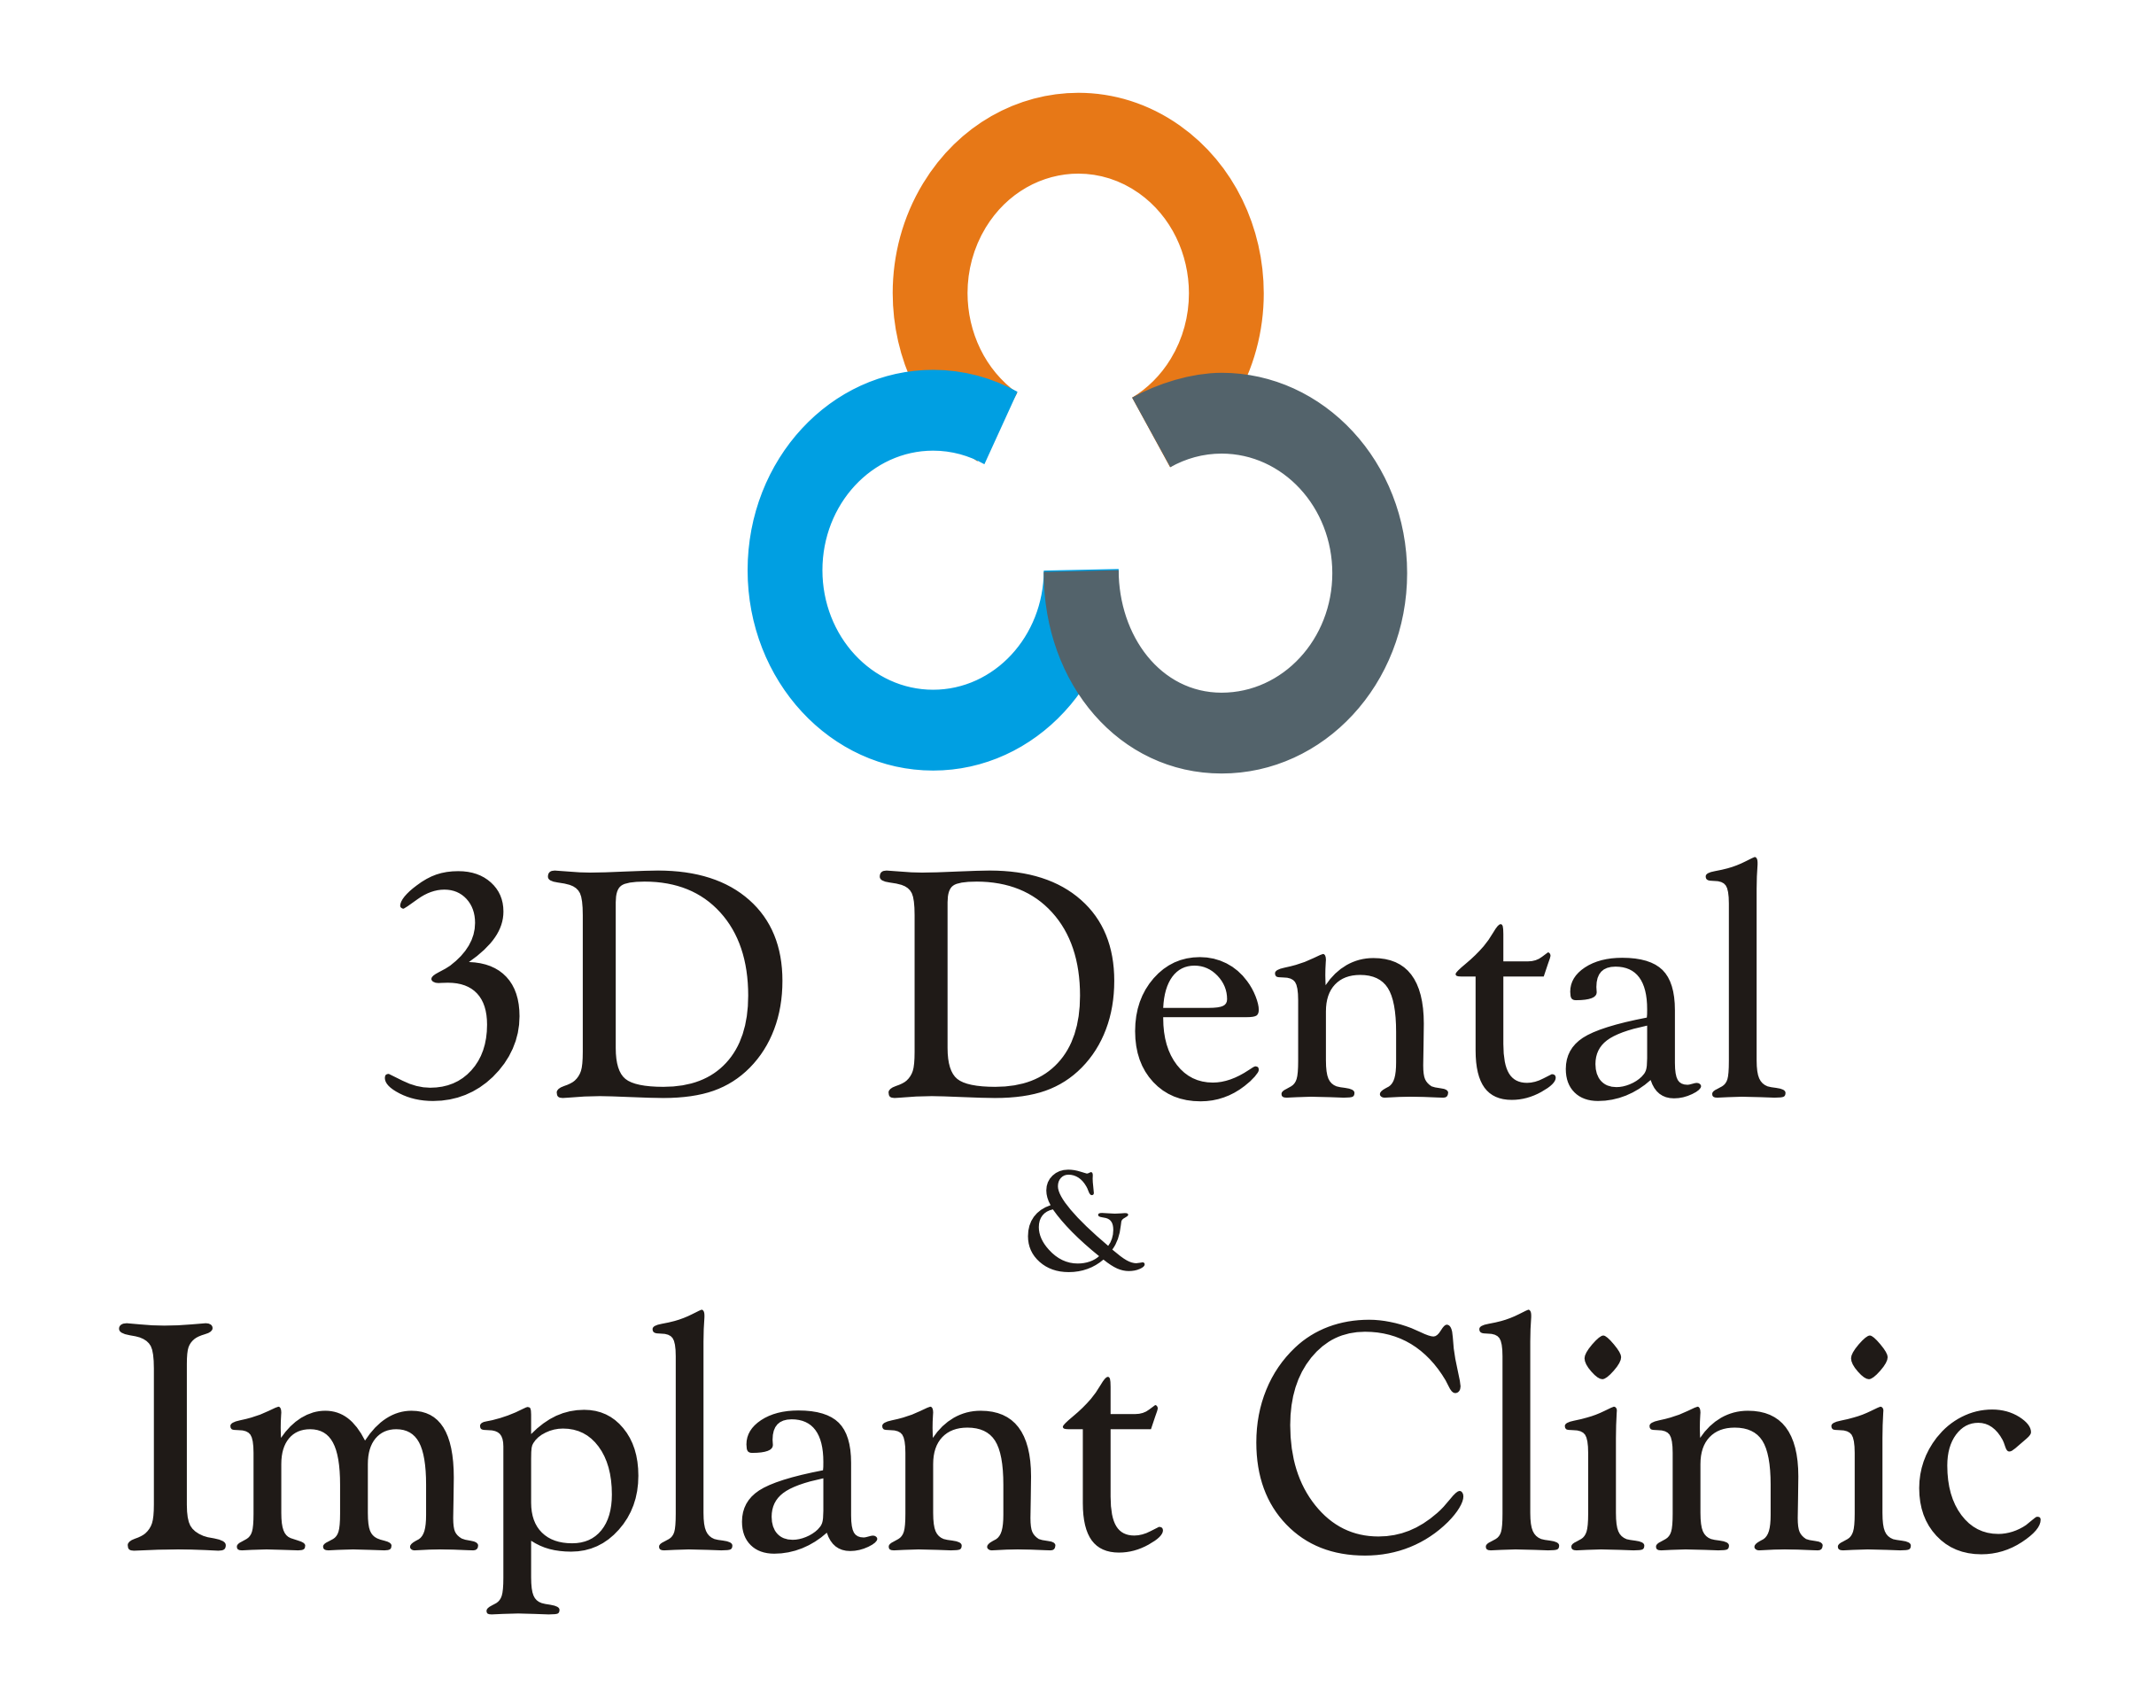 3D Dental Implant Clinic